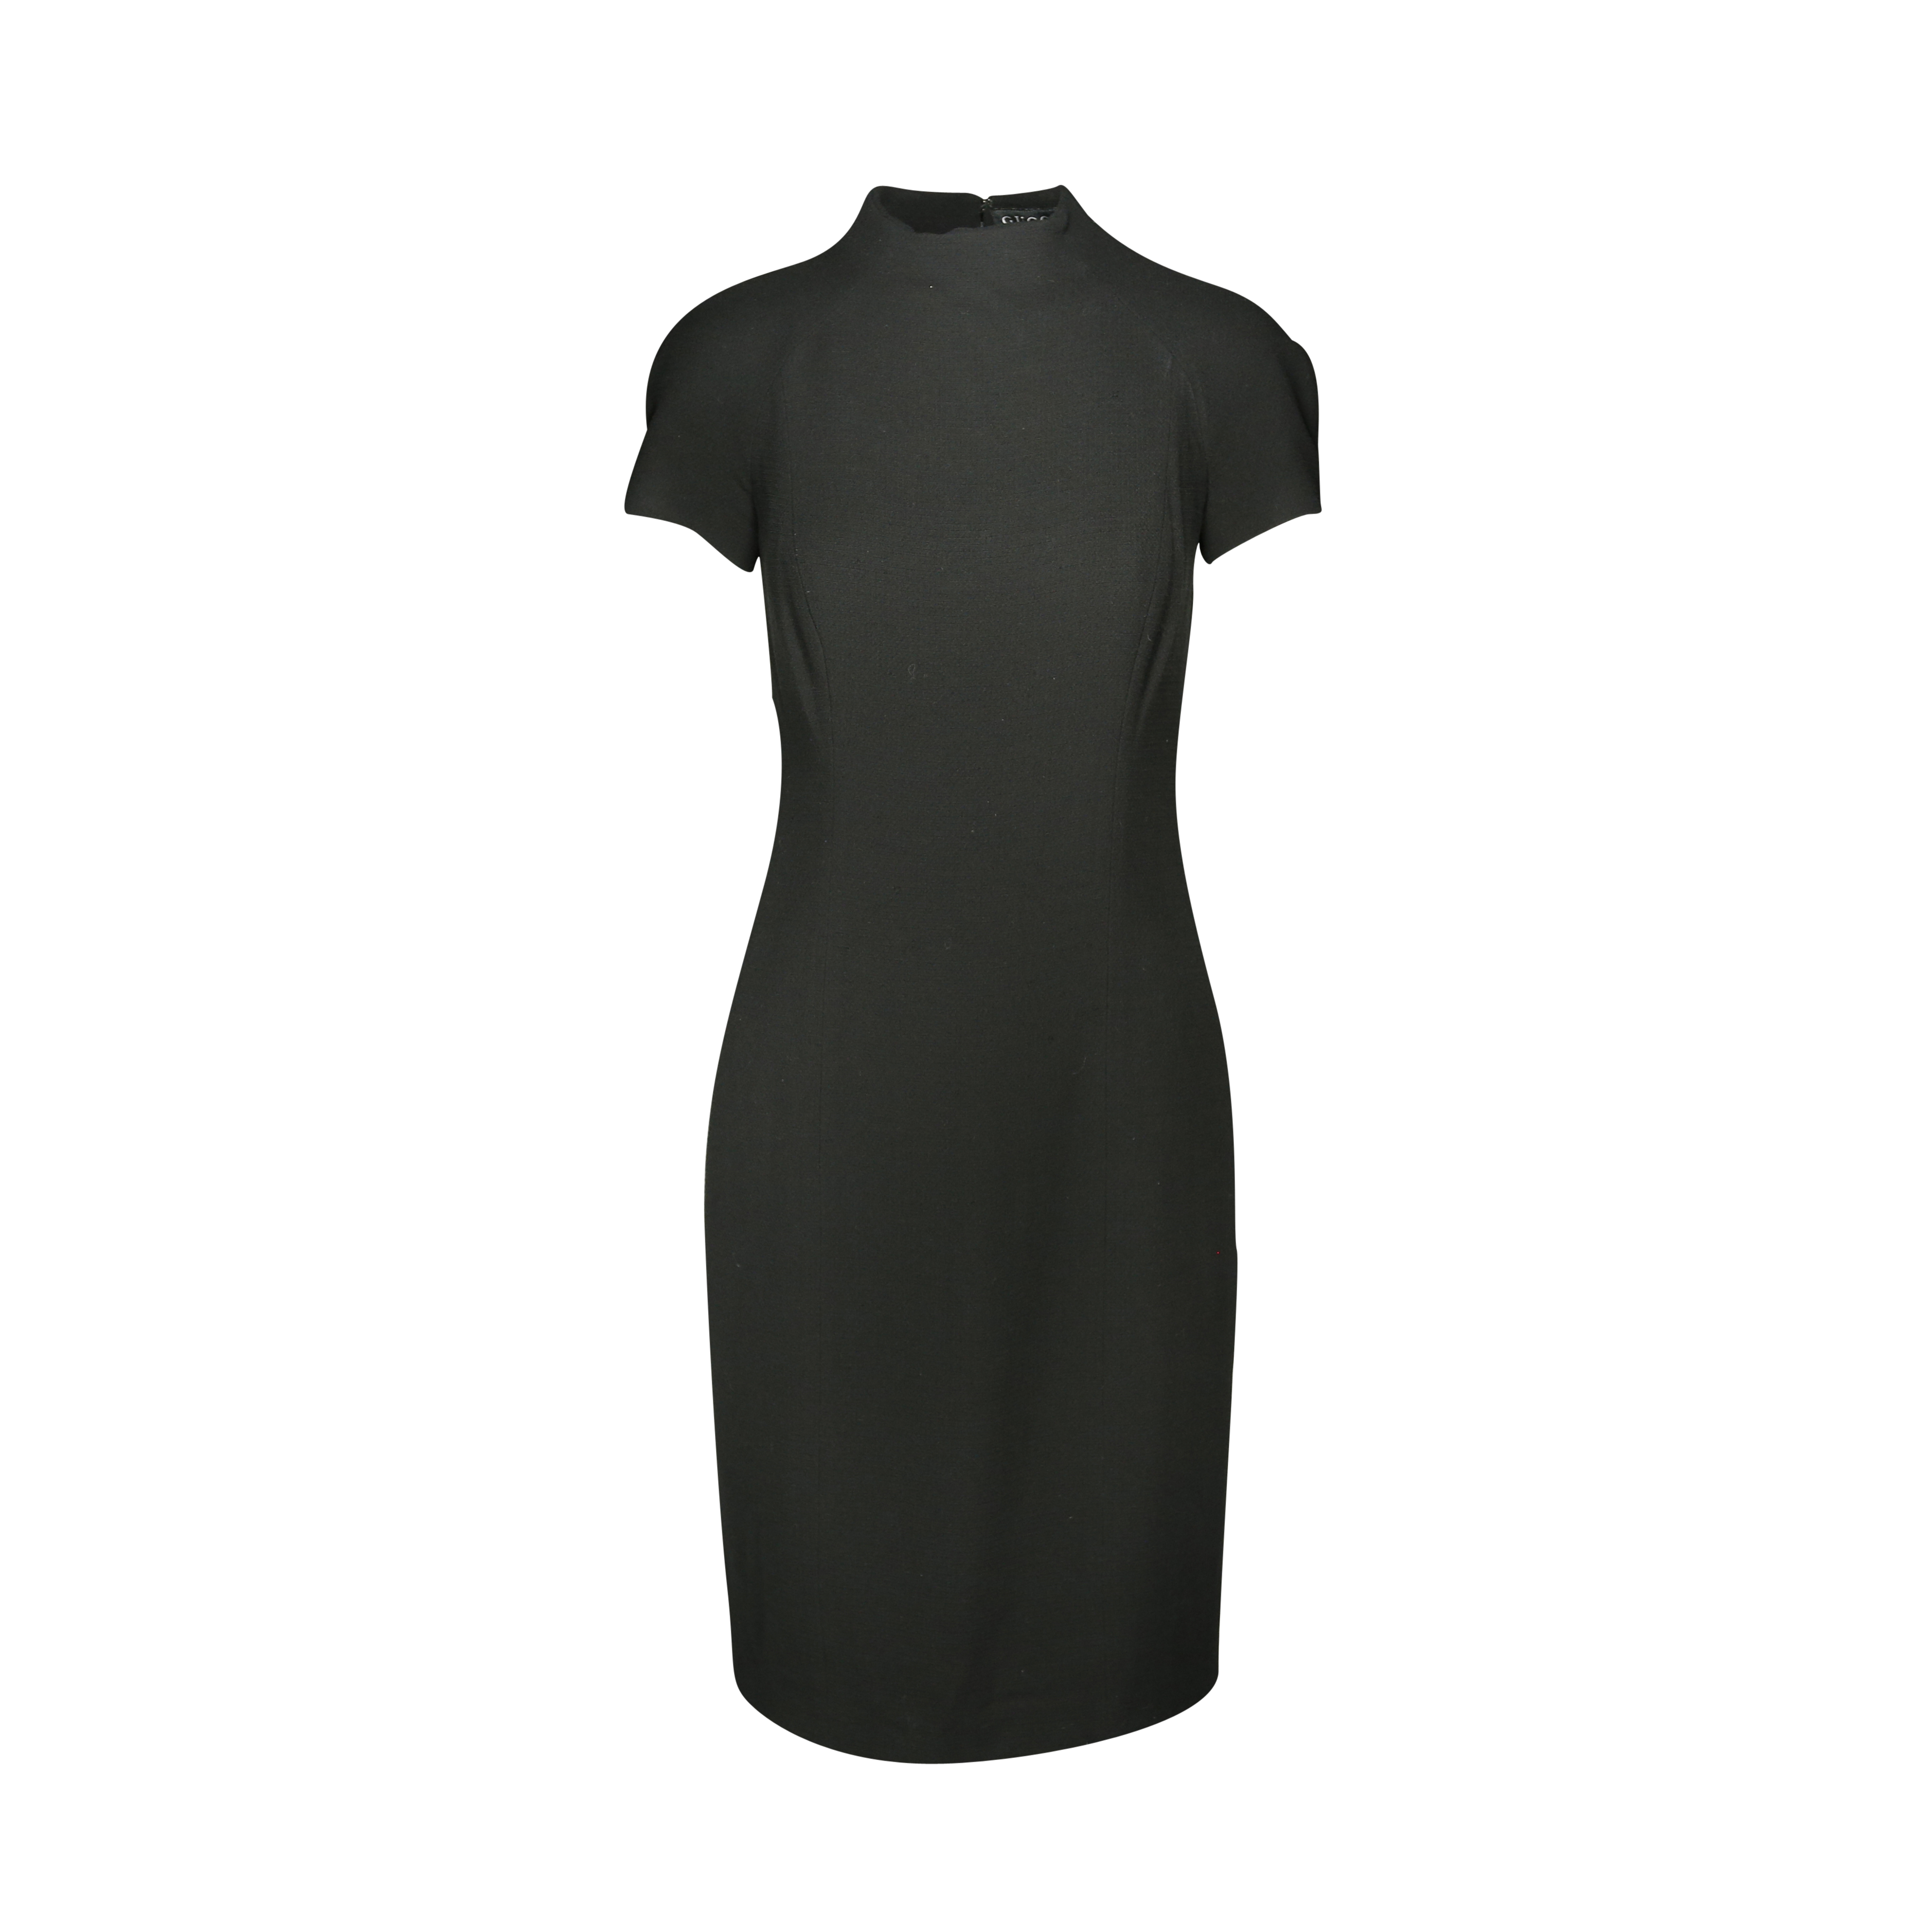 bb7a2d9bef5 Authentic Second Hand Gucci High Collar Sheath Dress (PSS-181-00020 ...